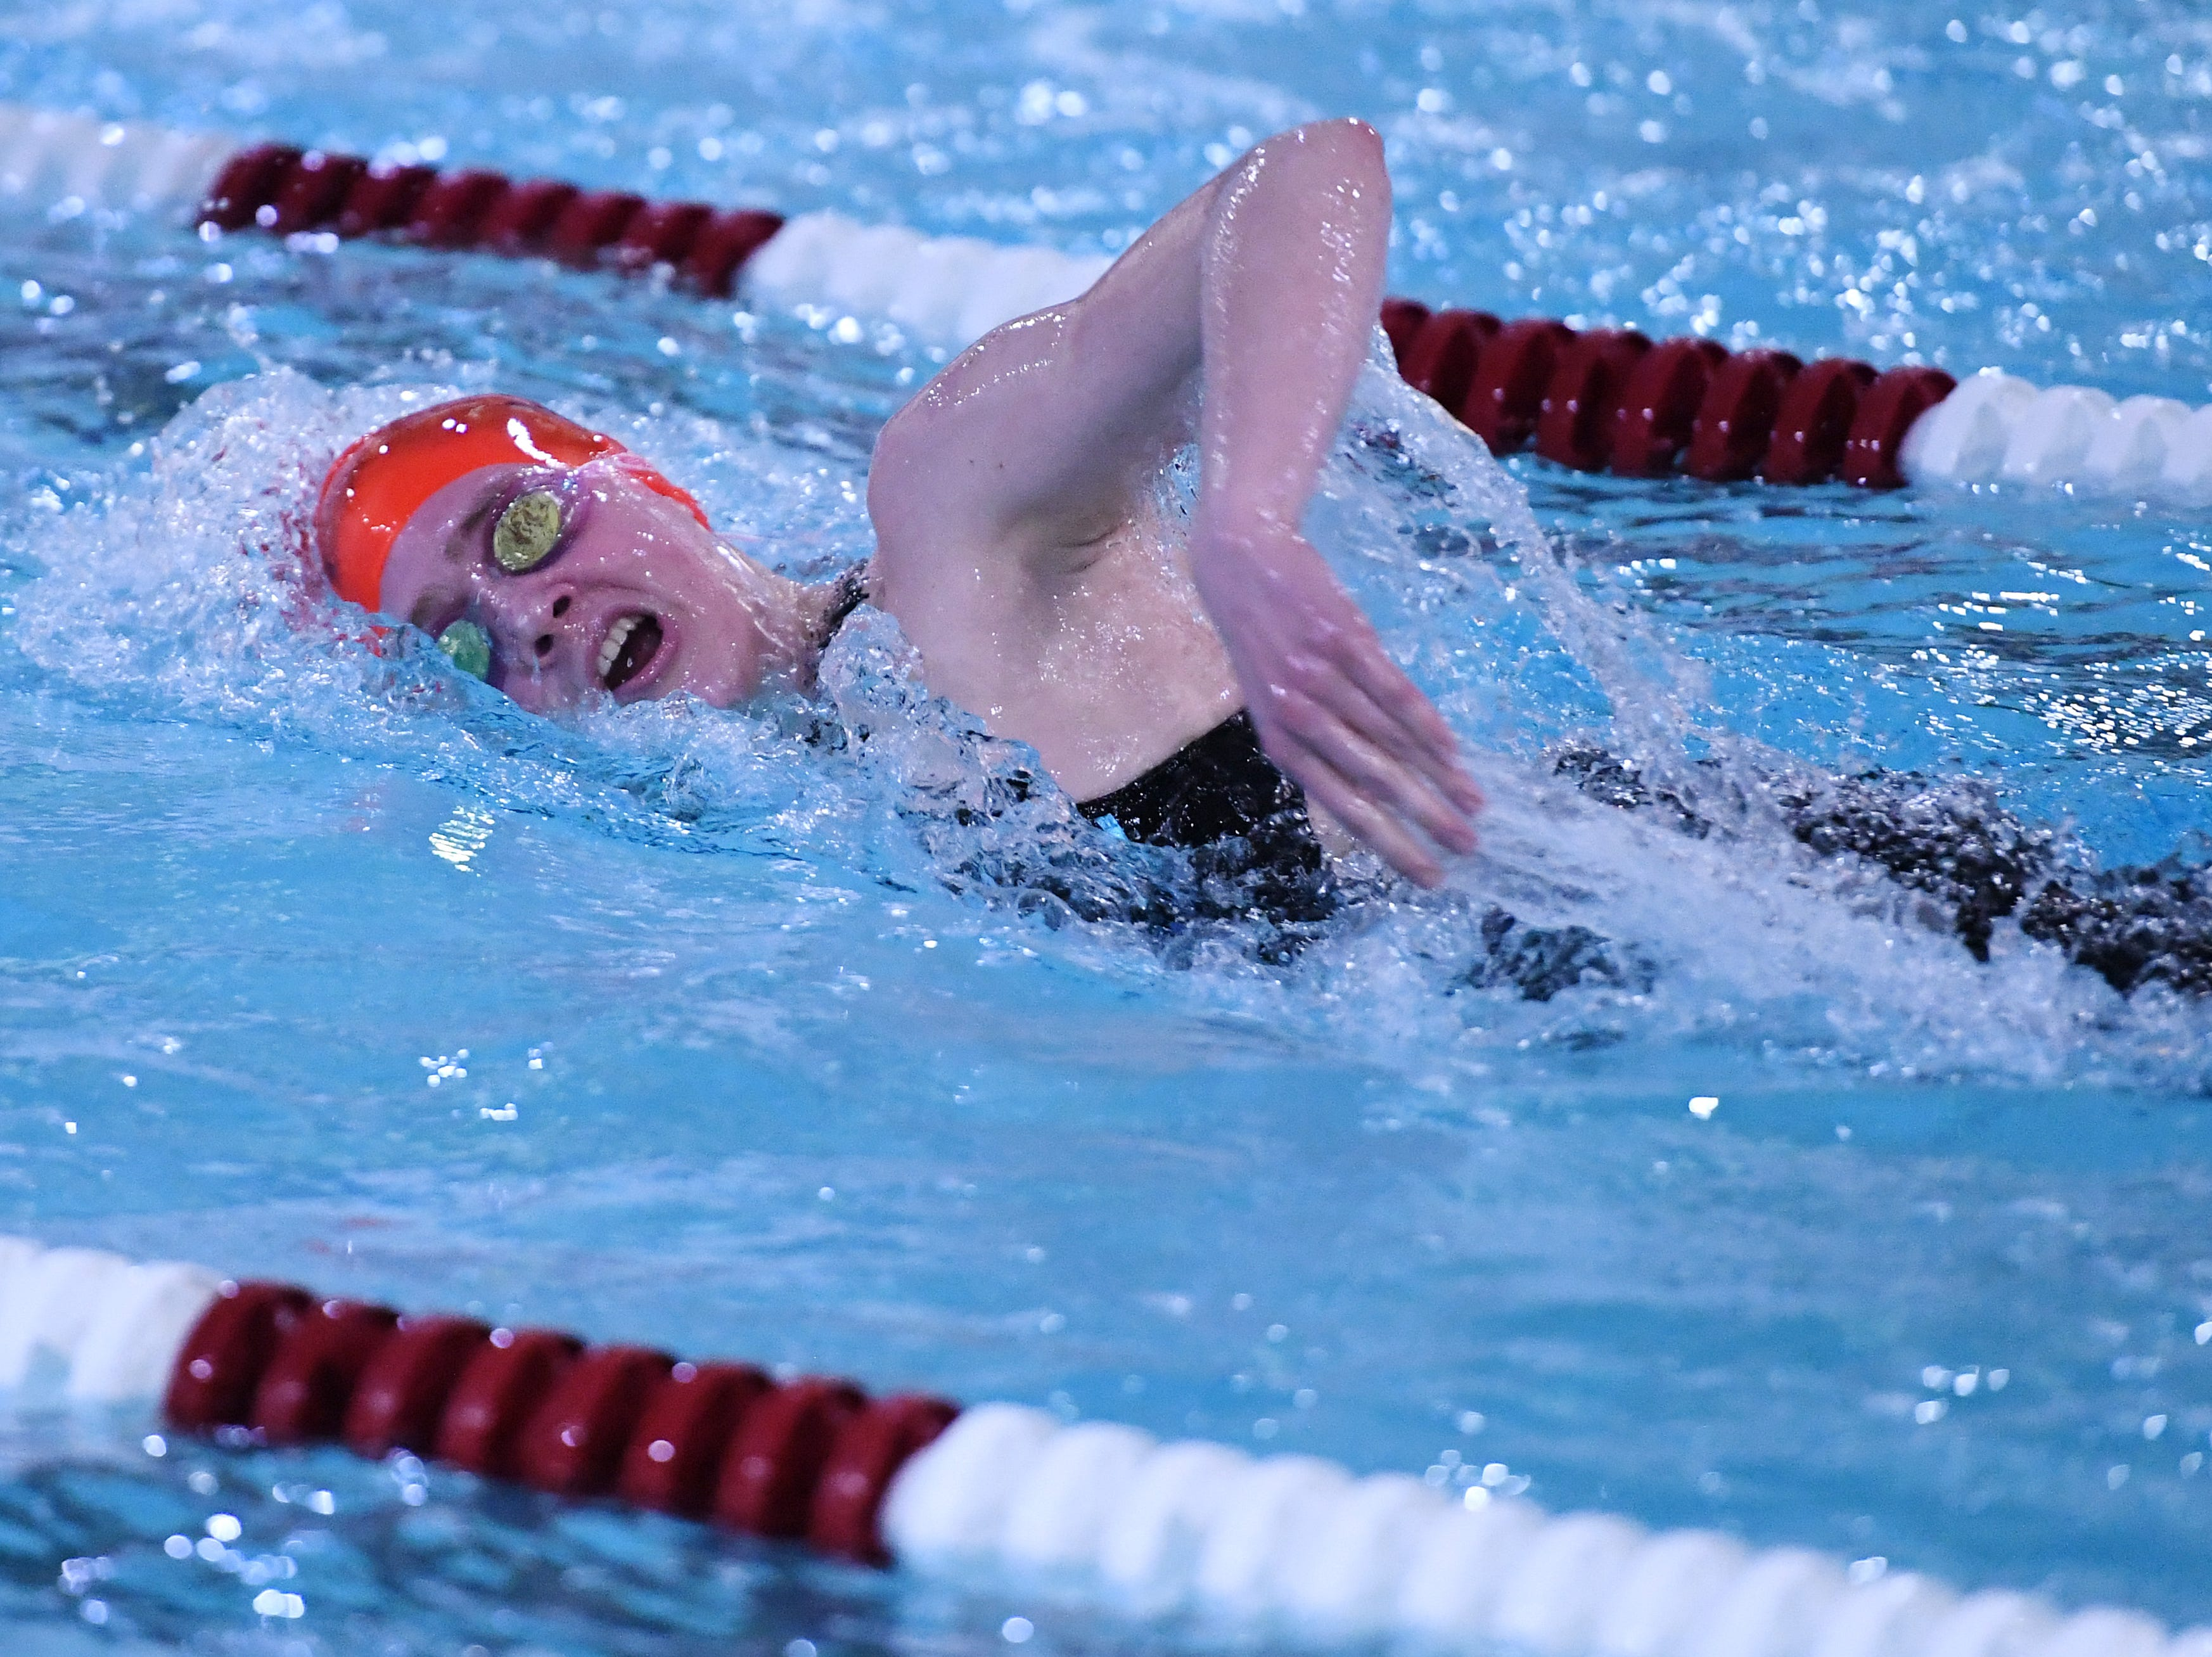 Morris County Swimming Championships at Morristown High School on Saturday, January 26, 2019. Grace Miller of Morristown won the 200- and 400-meter freestyle.